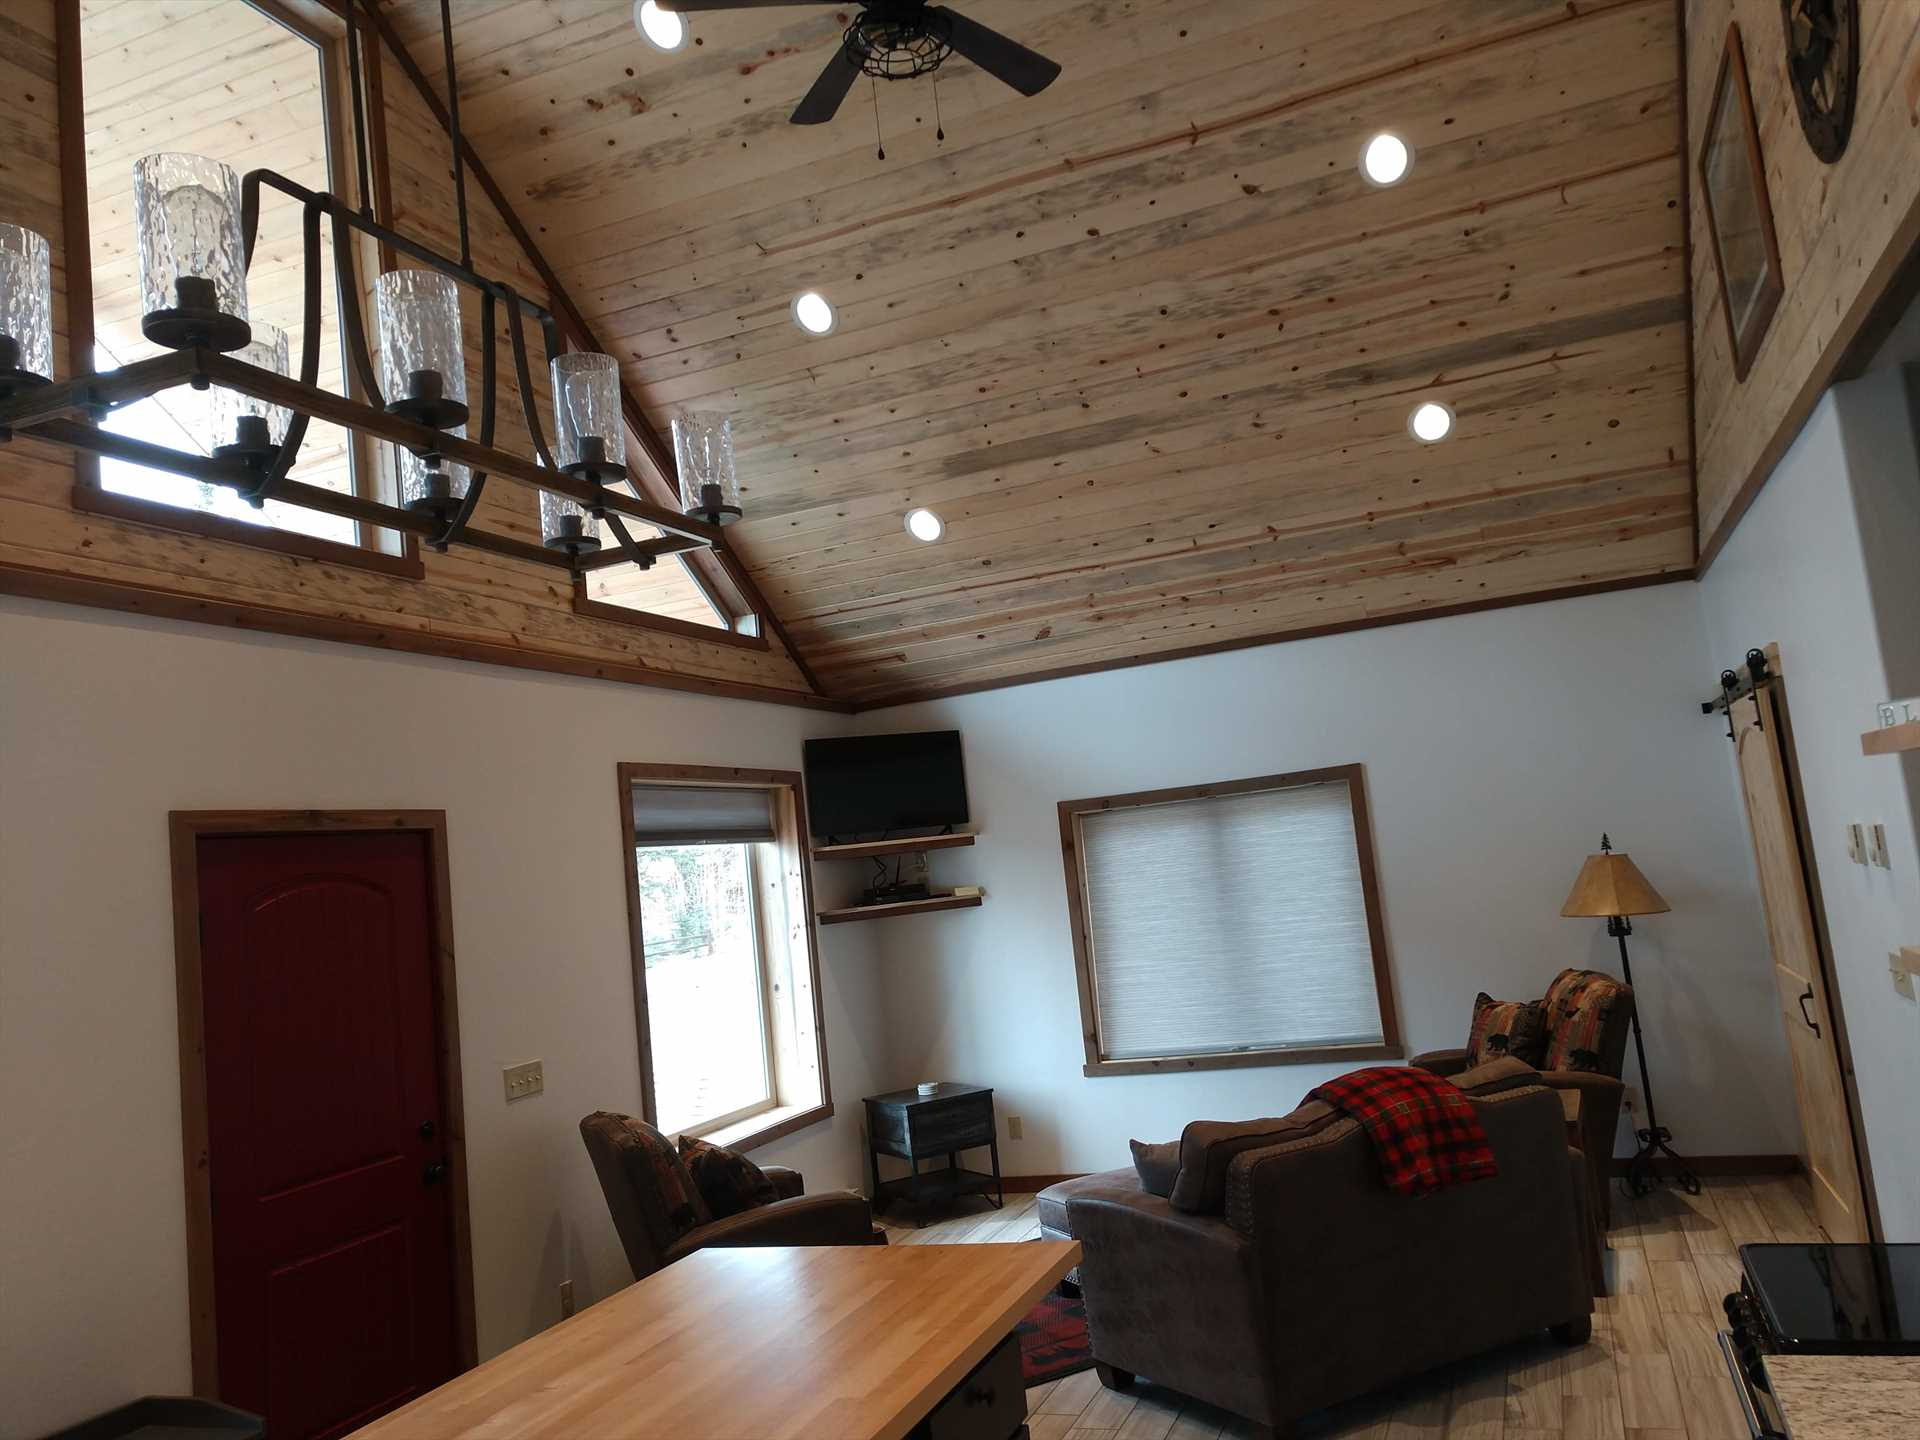 From Kitchen into Living Room of Bunkhouse